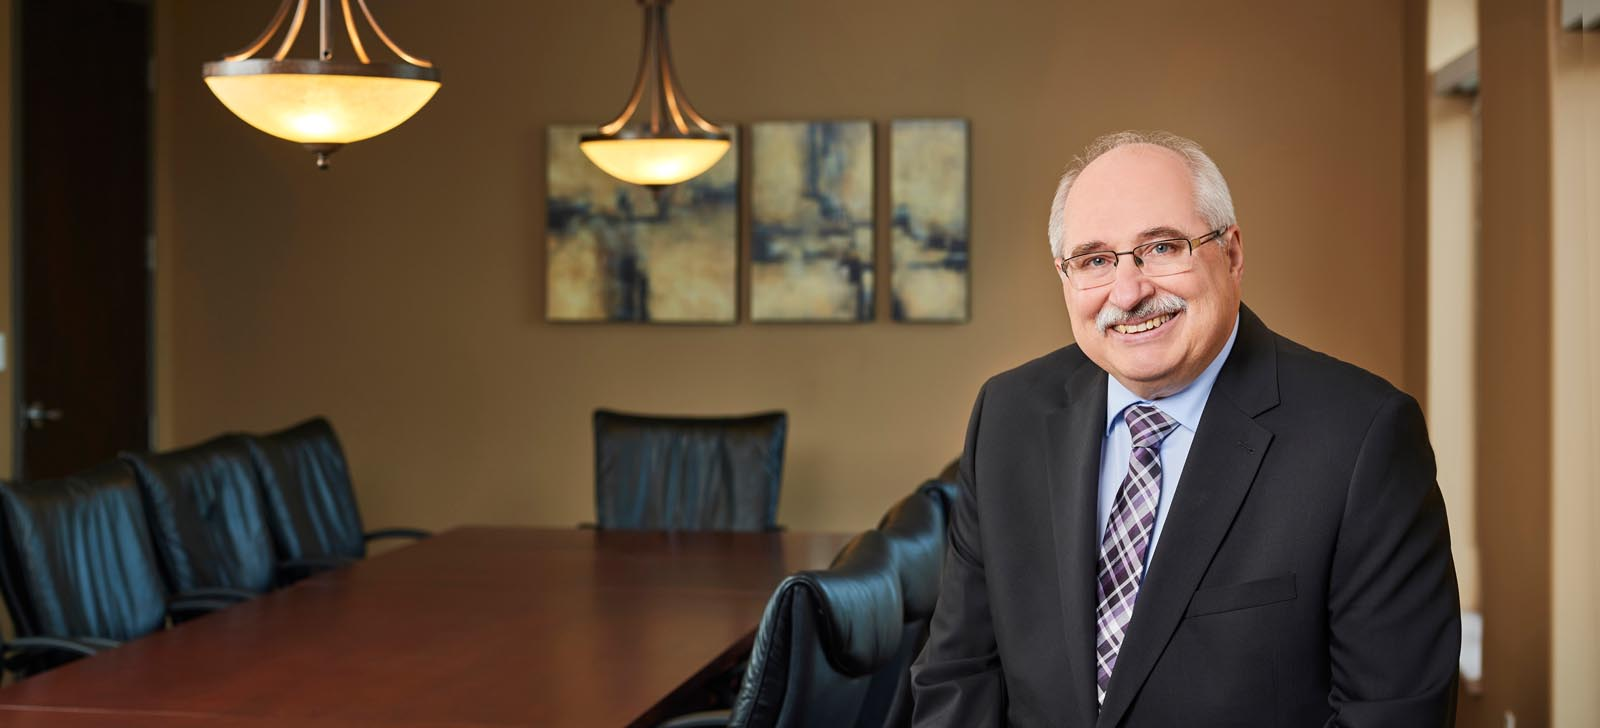 Ted_Leyzer_Millards Chartered Professional Accountants